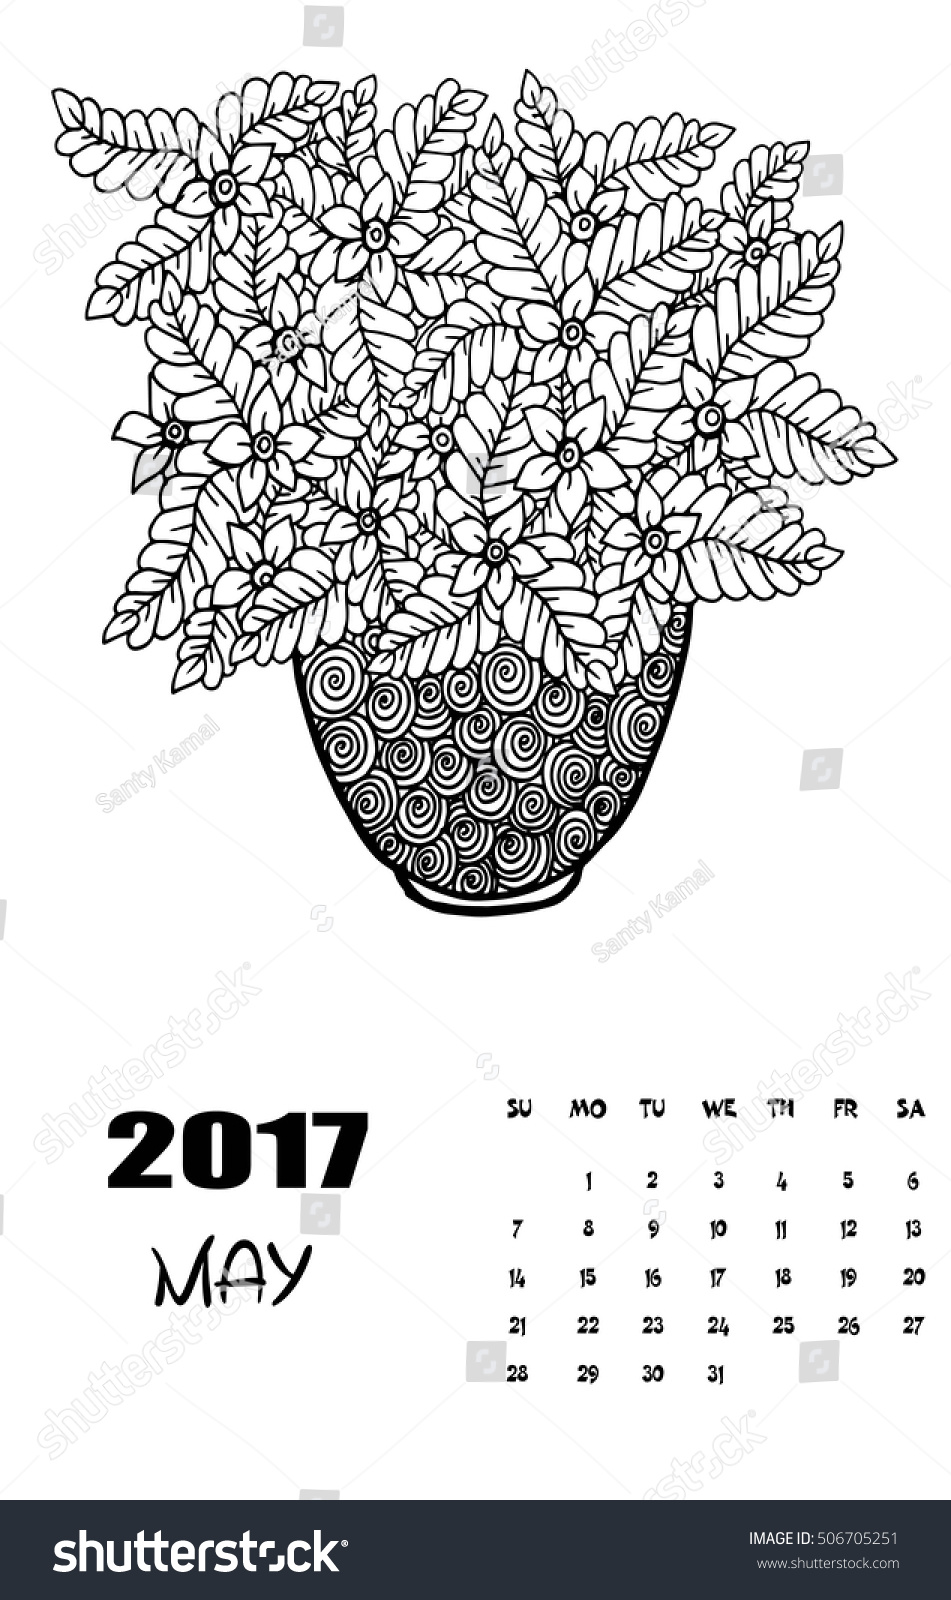 may 2017 calendar line art black stock vector 506705251 shutterstock